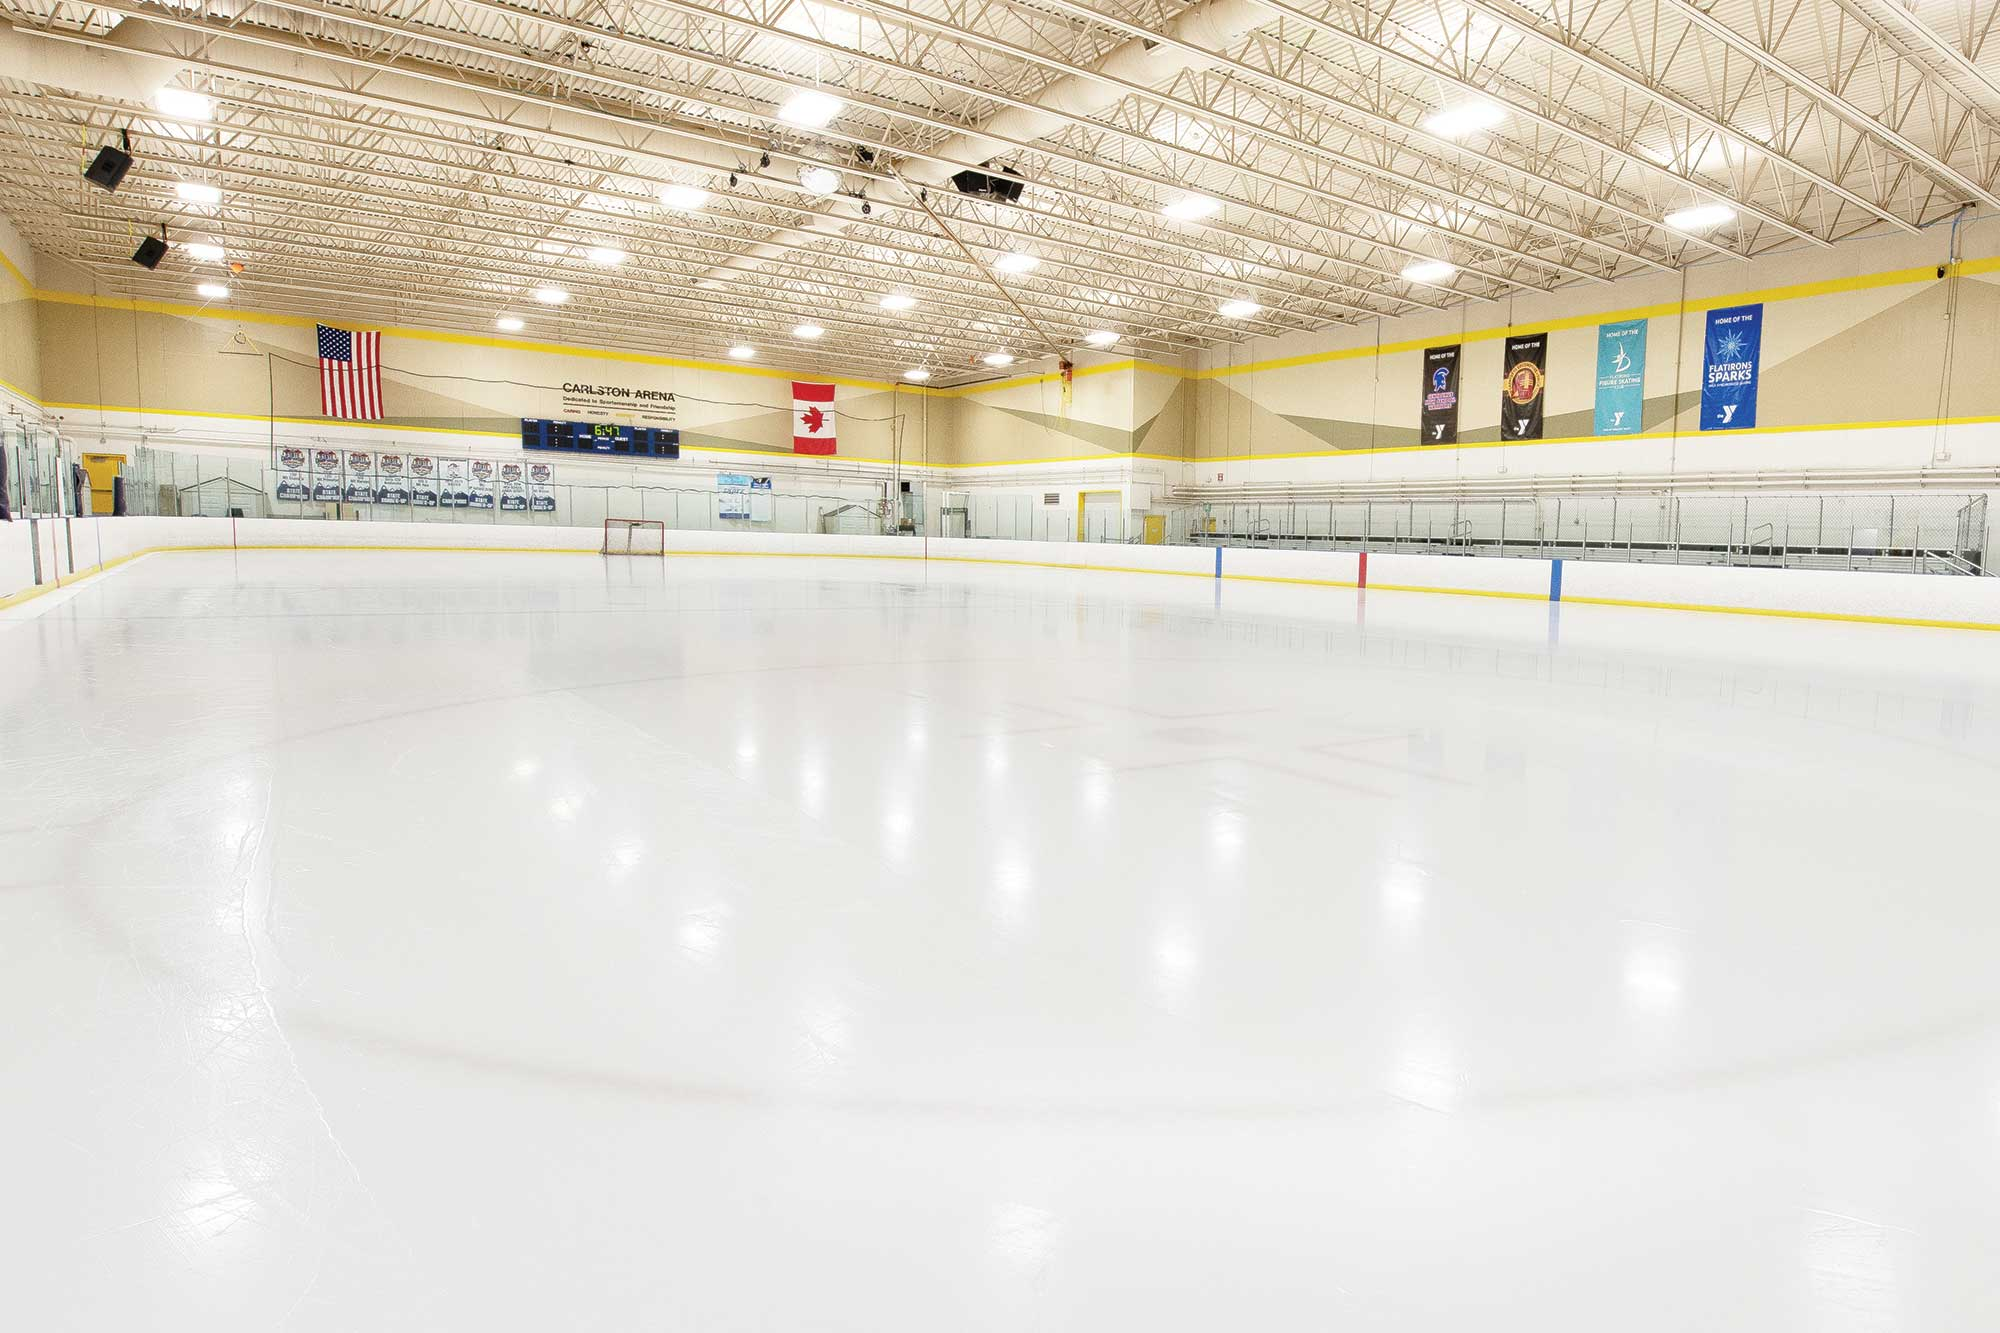 Ice rink at the Arapahoe YMCA